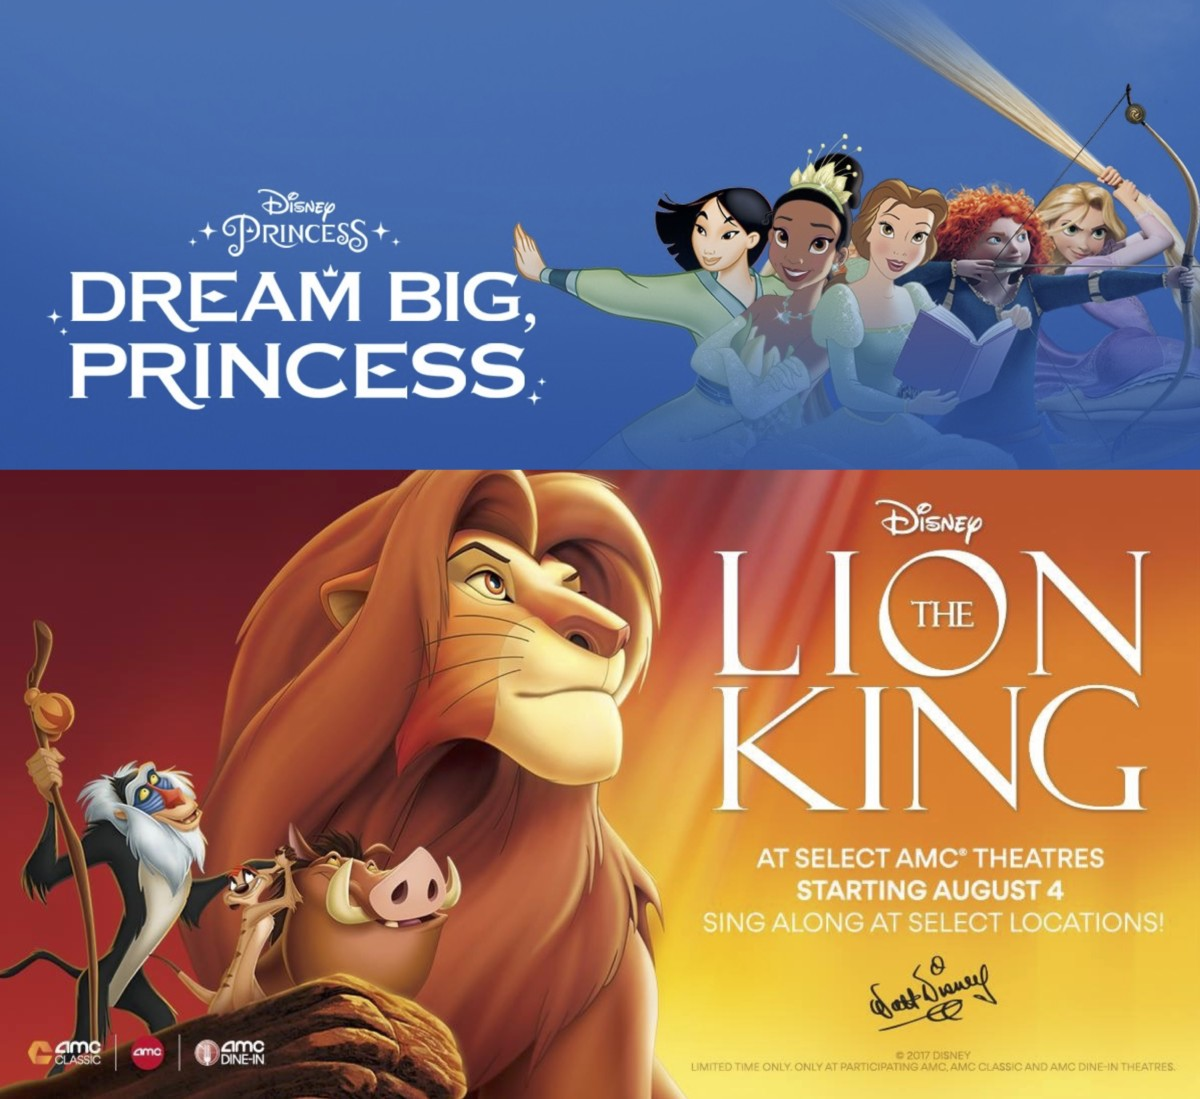 TMSM Explains: Why Disney Princess And Lion King Fans Need to Go to AMC Theaters! 1